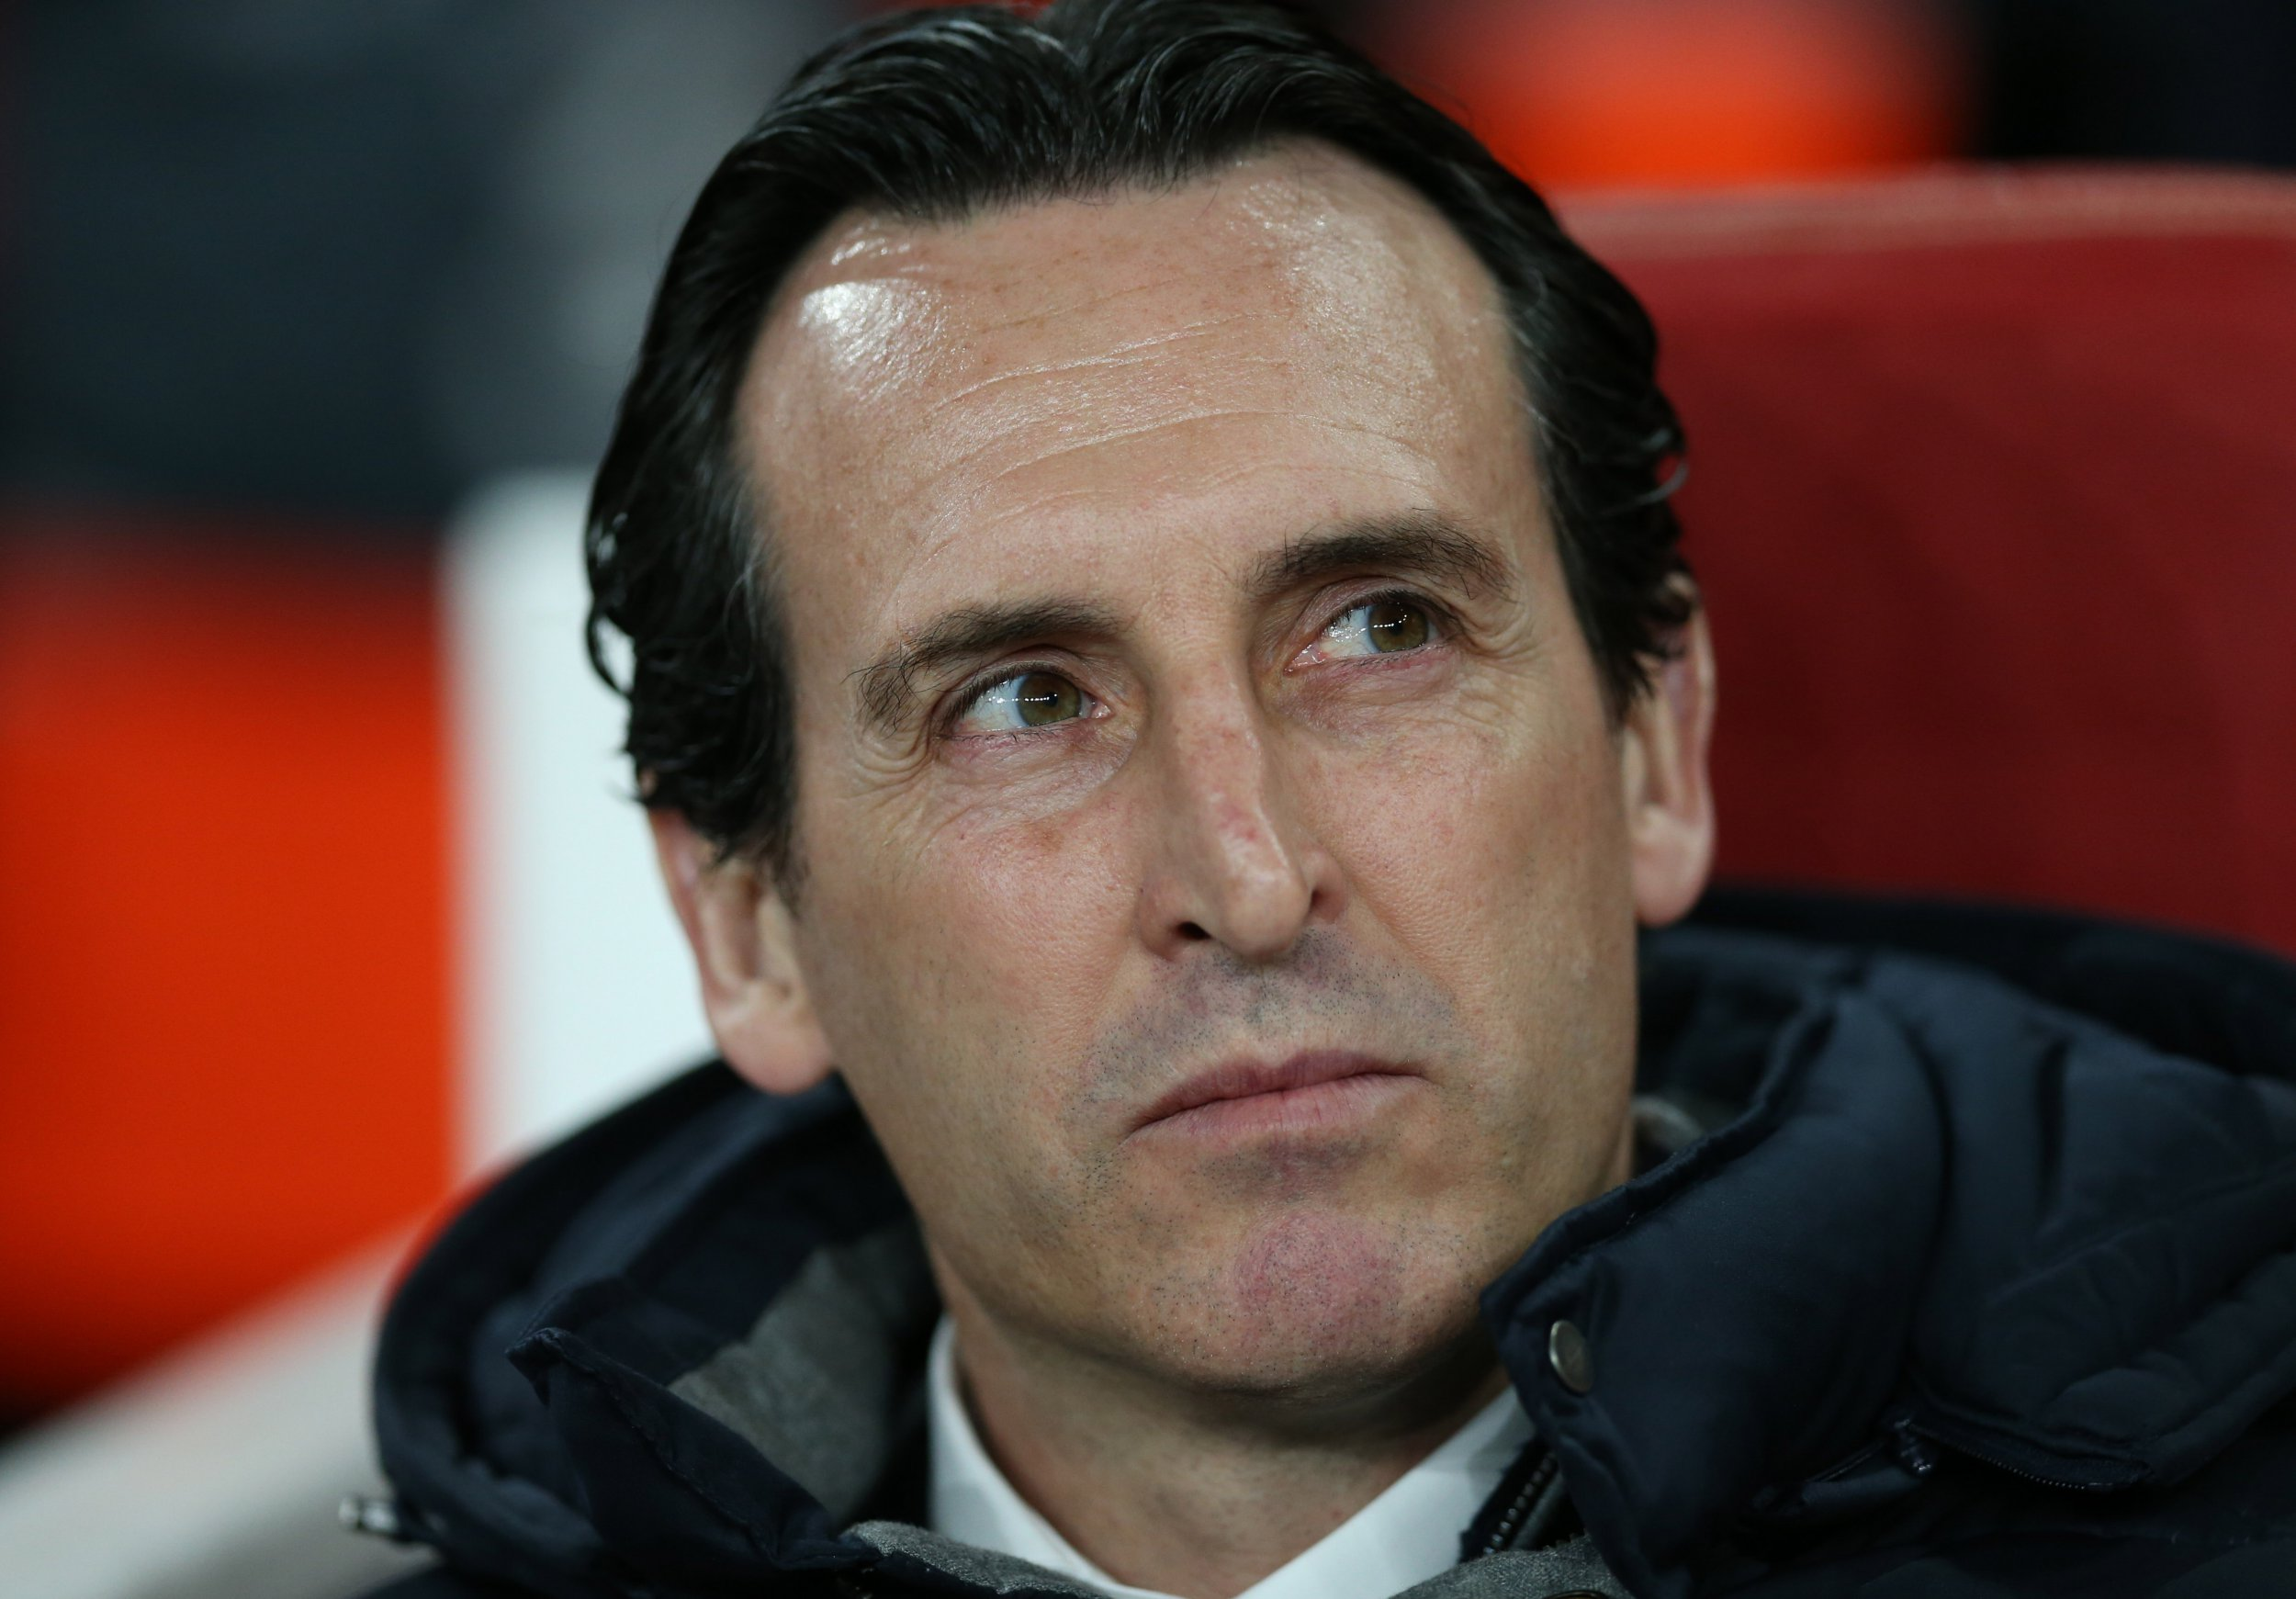 LONDON, ENGLAND - MARCH 14: Unai Emery, Manager of Arsenal looks on prior to the UEFA Europa League Round of 16 Second Leg match between Arsenal and Stade Rennais at Emirates Stadium on March 14, 2019 in London, England. (Photo by Alex Morton/Getty Images)